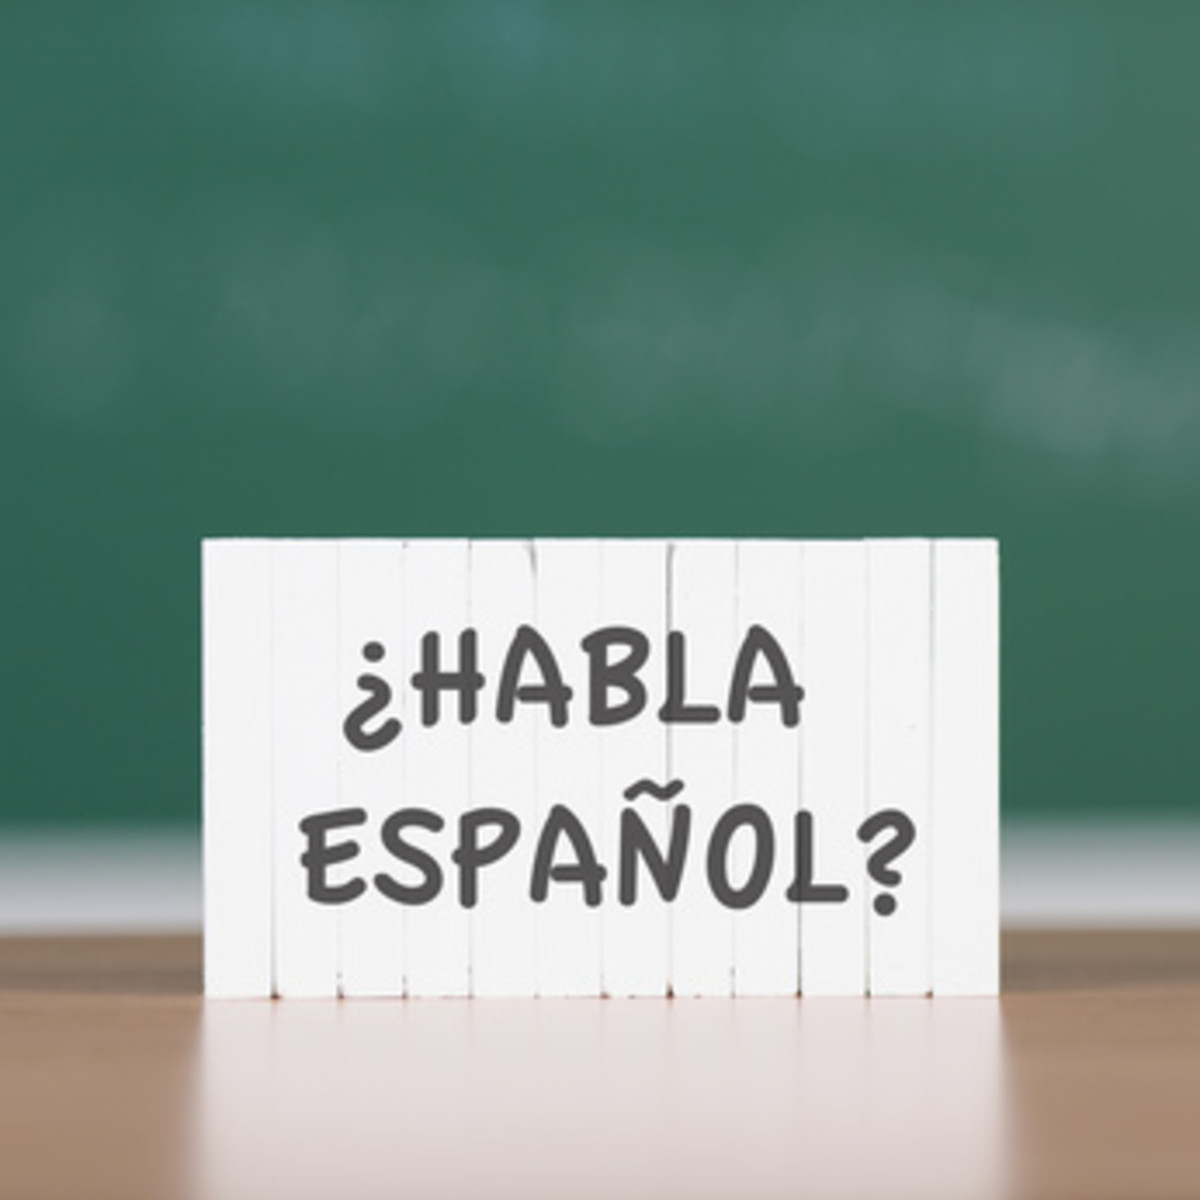 how-to-count-to-100-in-spanish